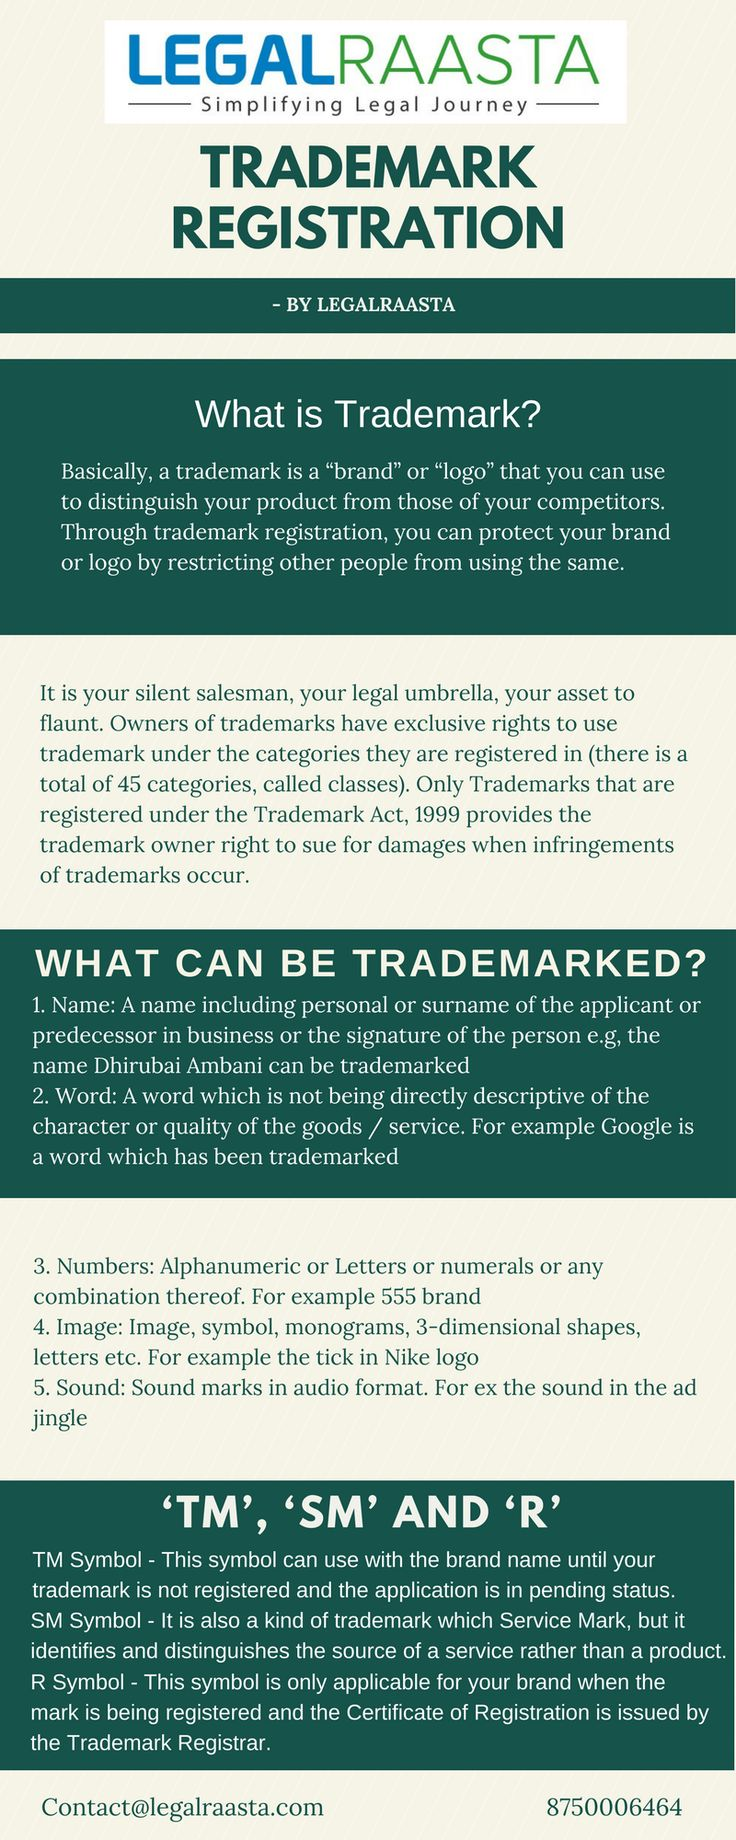 Trademark registration protects your brand & logo. LegalRaasta is top trademark consultant in Delhi NCR, Mumbai, Bengaluru & India @ Rs 1499 only Email: contact@legalraasta.com Contact No: 8750006464 https://www.legalraasta.com/trademark-registration/ #trademarkregistration #trademarkfiling #Trademarkapplication #Trademarkregistrationform #Trademarkregistrationonline #Registerlogo #TrademarkregistrationinIndia #Trademarkregistrationprocedure